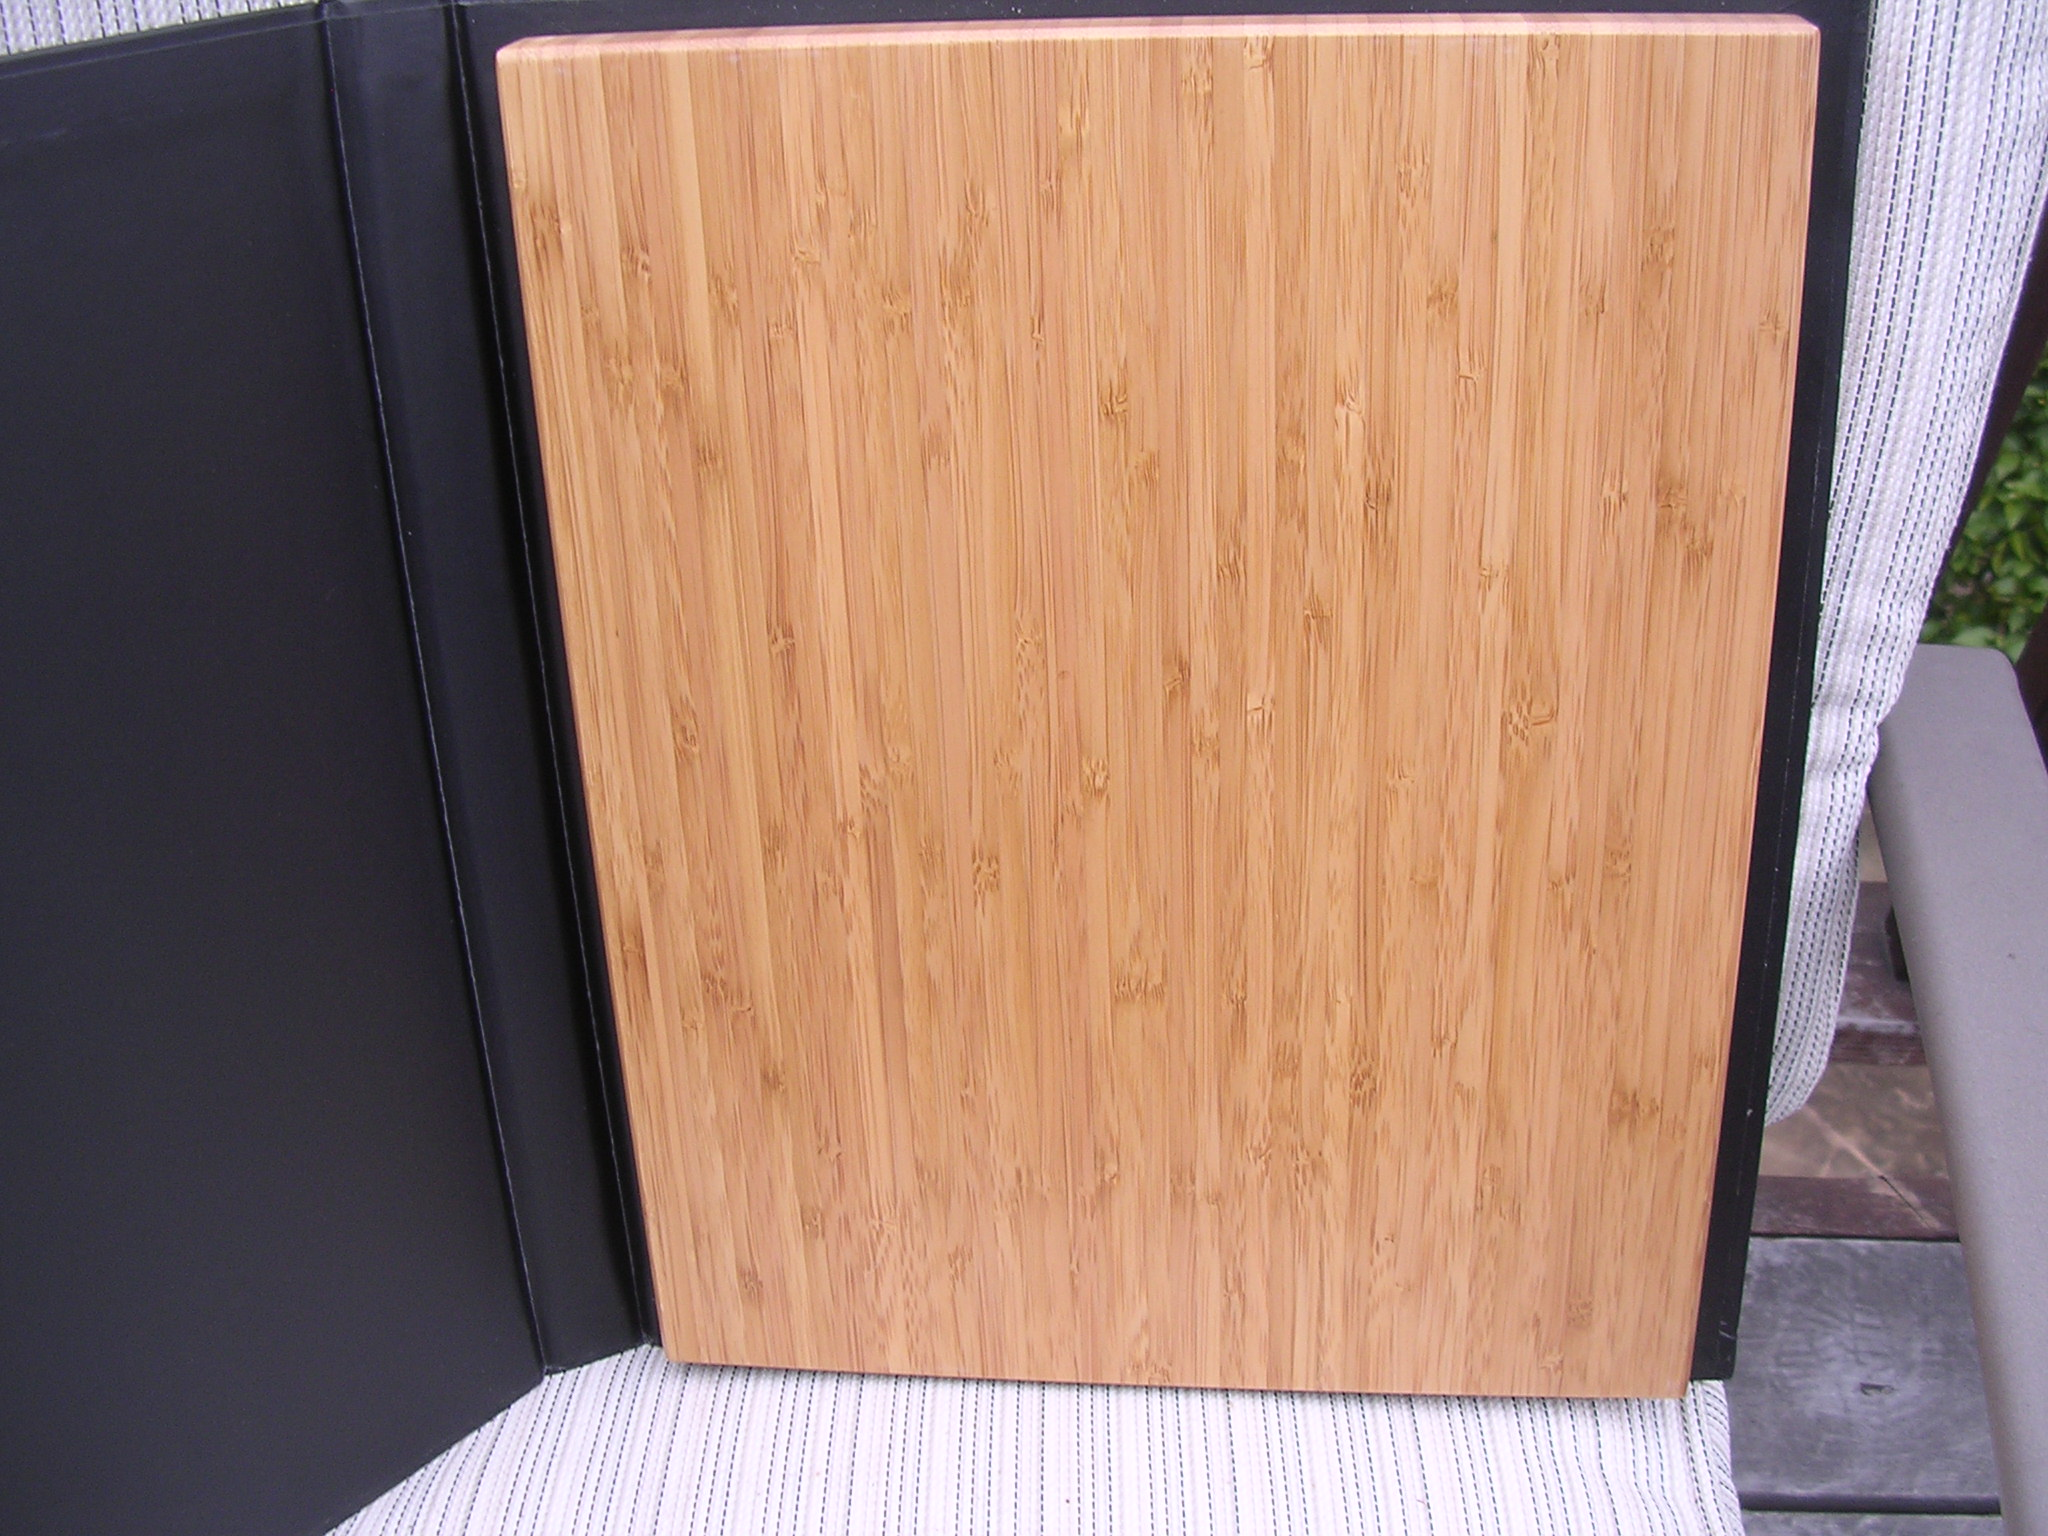 4H CONTEMPORAY bamboo kitchen cabinets Model 4H Bamboo Flat Panel door Kitchen Cabinets Photo Album